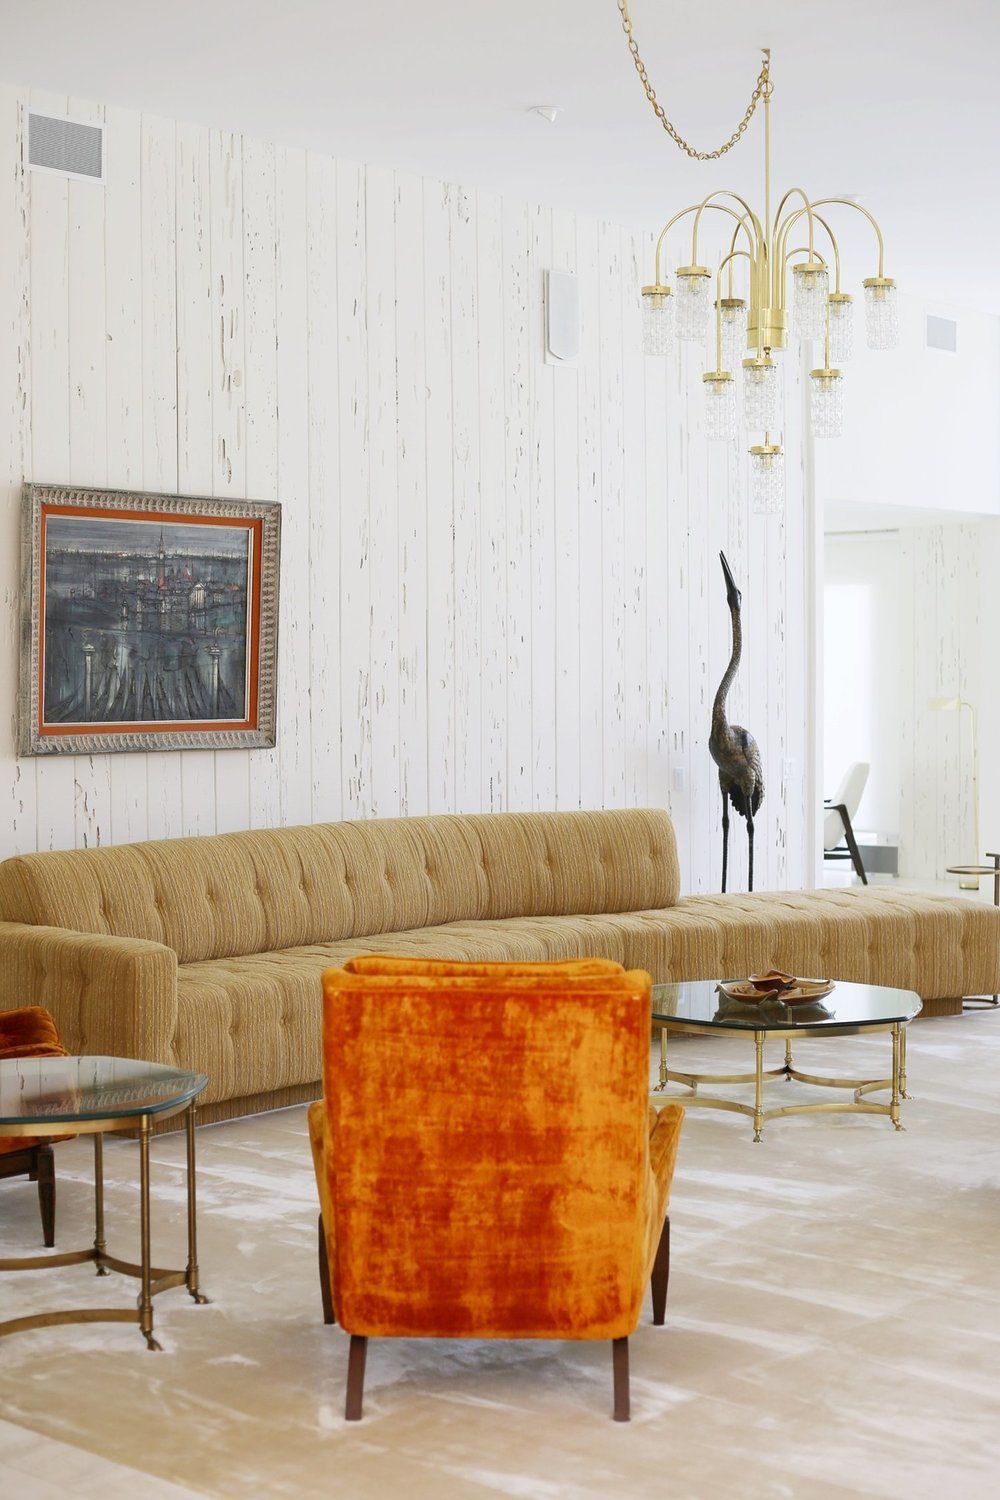 Couch by  Elrod , painting by  Regis Bouvier de Cachard  which is from Frank Sinatra's office in the 1960s, orange chair by  Adrian Pearseall .